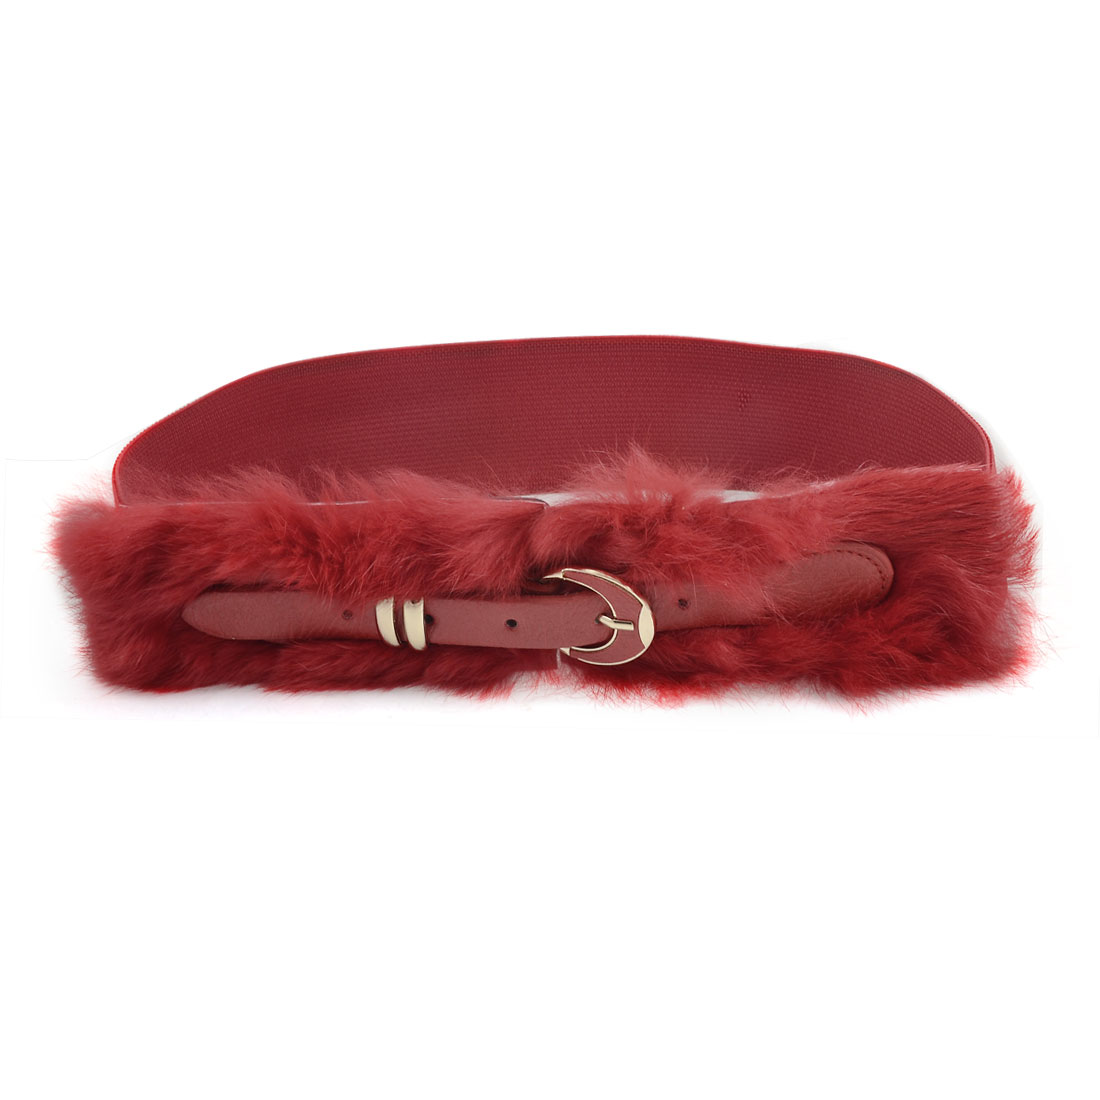 Single Pin Buckle Red Faux Fur Textured Stretchy Waistband Belt for Ladies